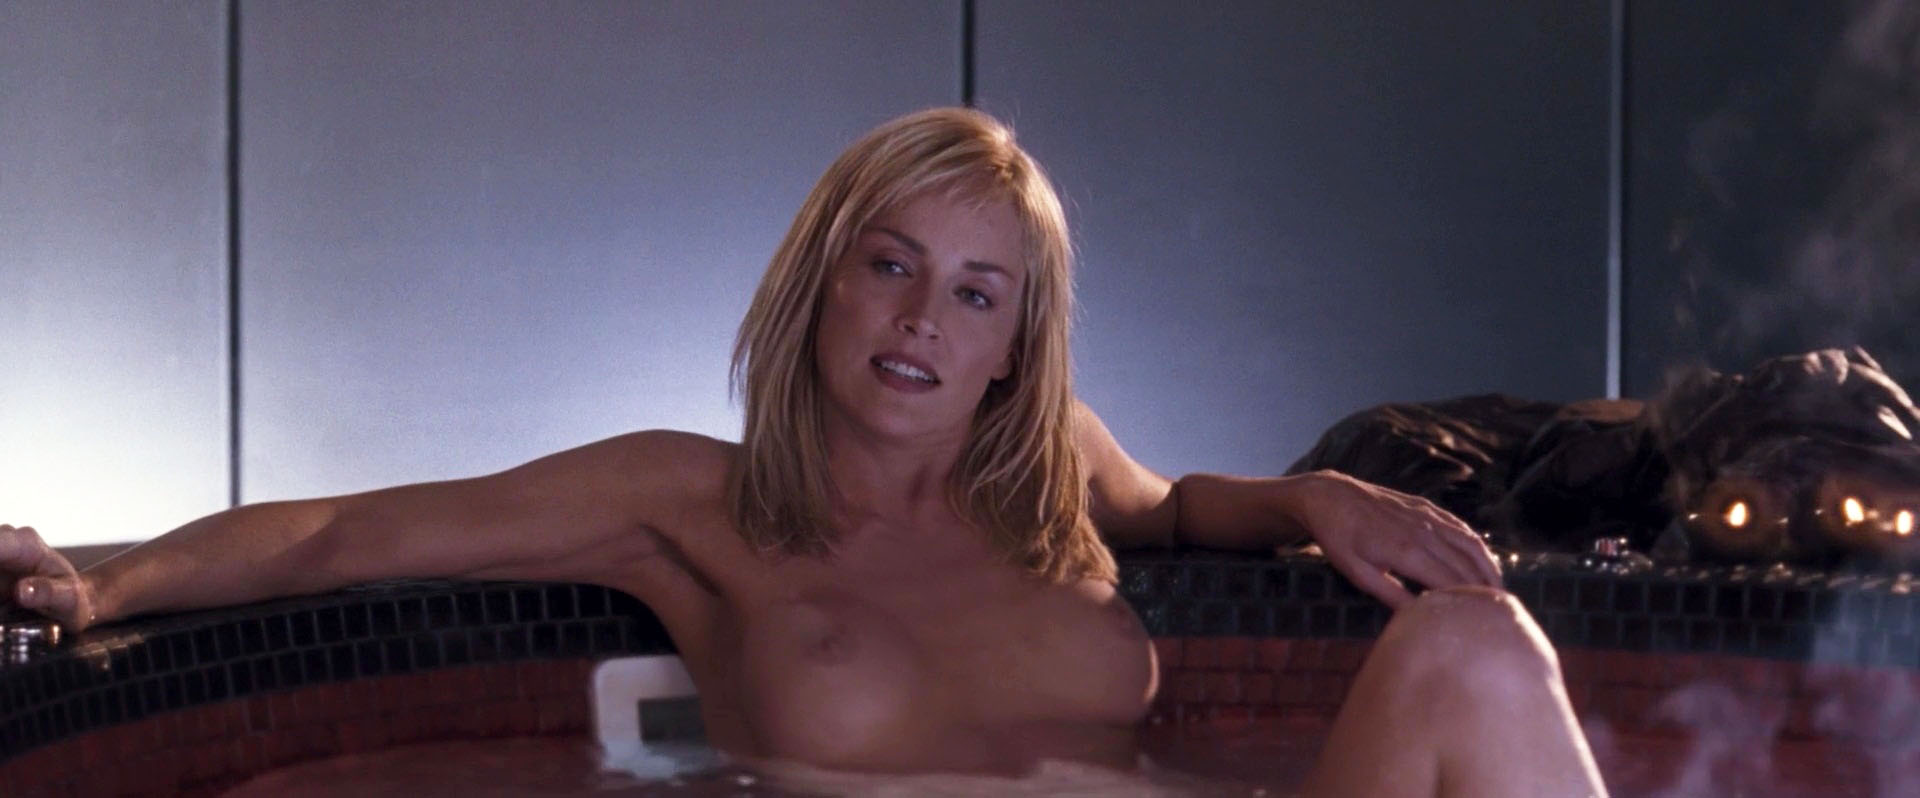 Sharon stone sexy movies